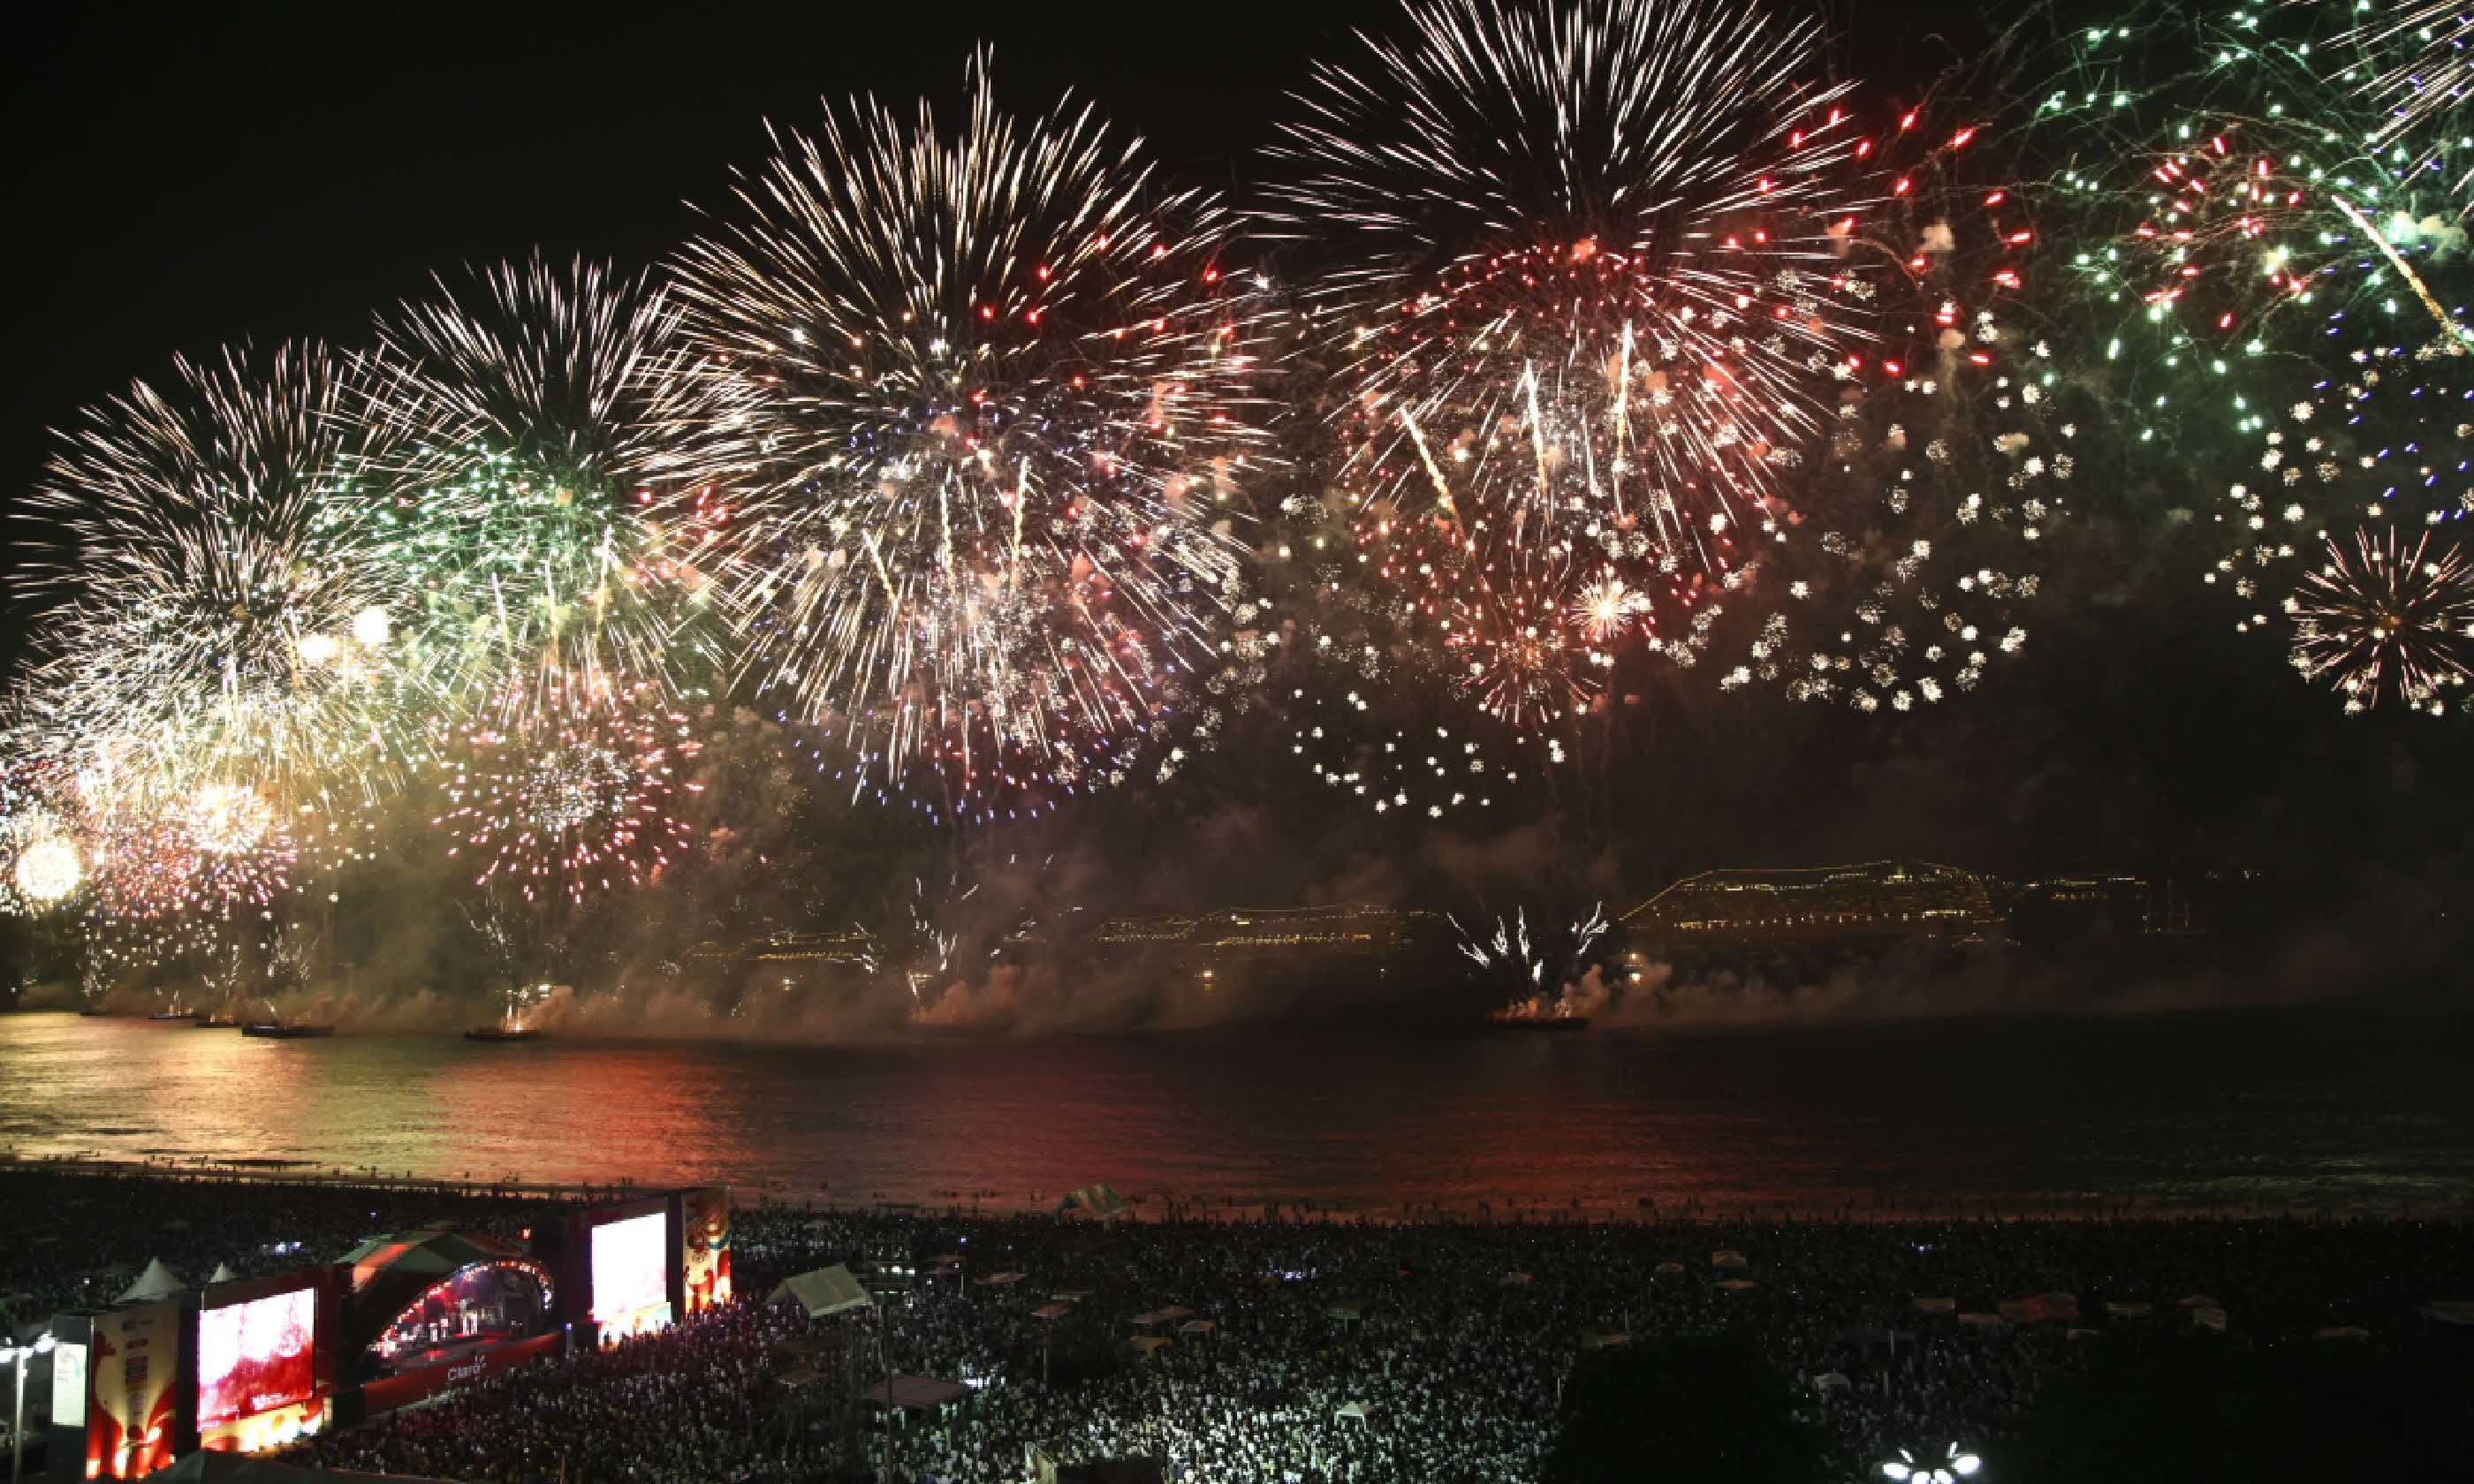 Spectacular fireworks display at Copacabana beach (Shutterstock)